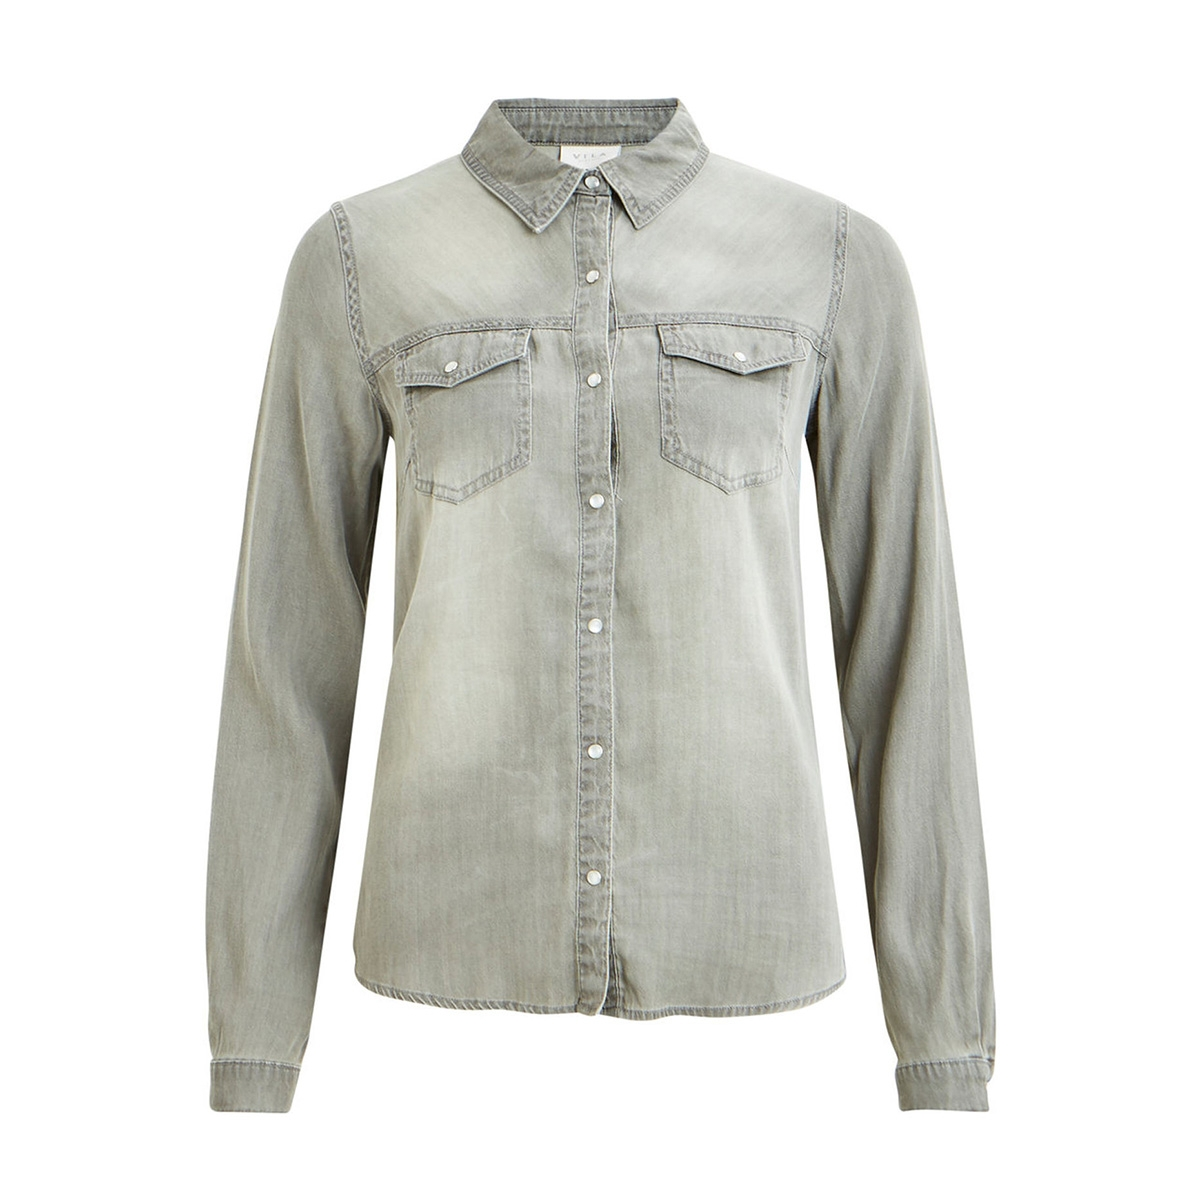 vibista denim shirt-noos 14033008 vila blouse grey denim